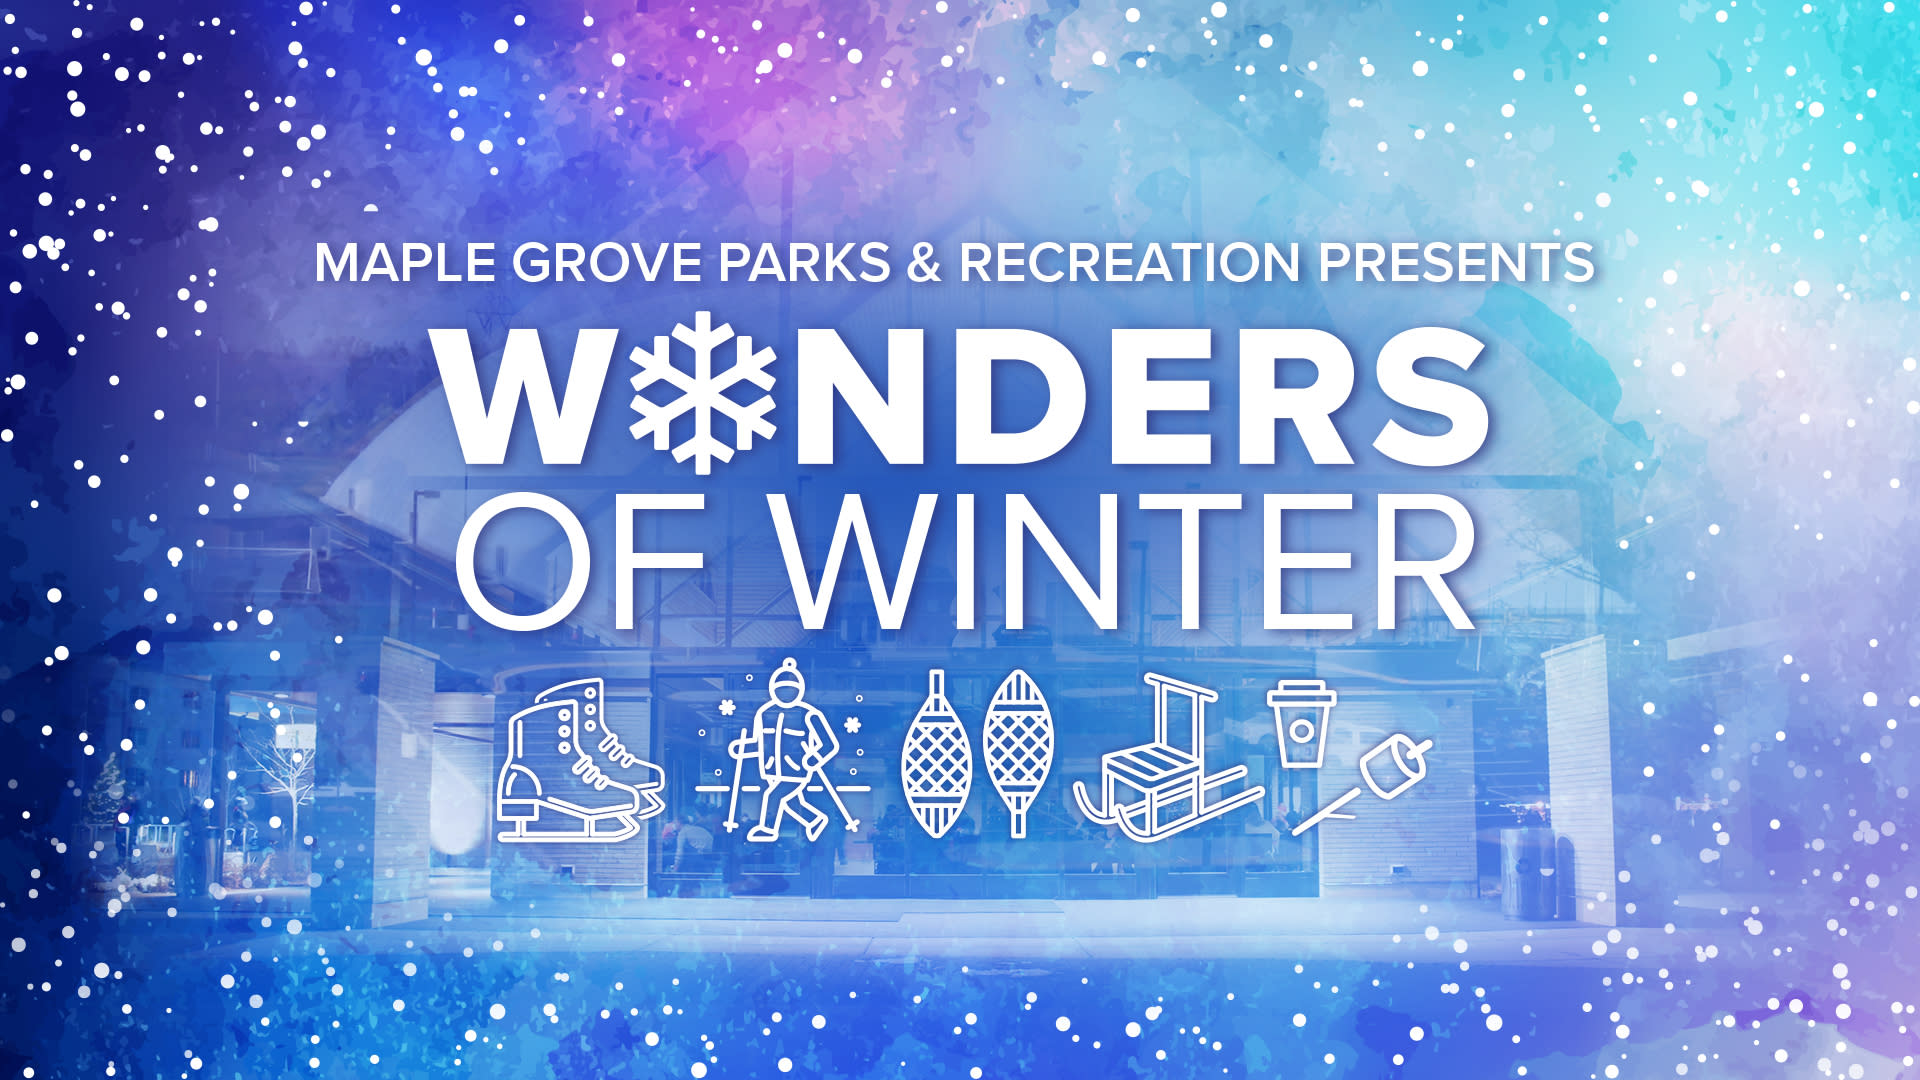 21624_wonders-of-winter_event-graphic-main-2